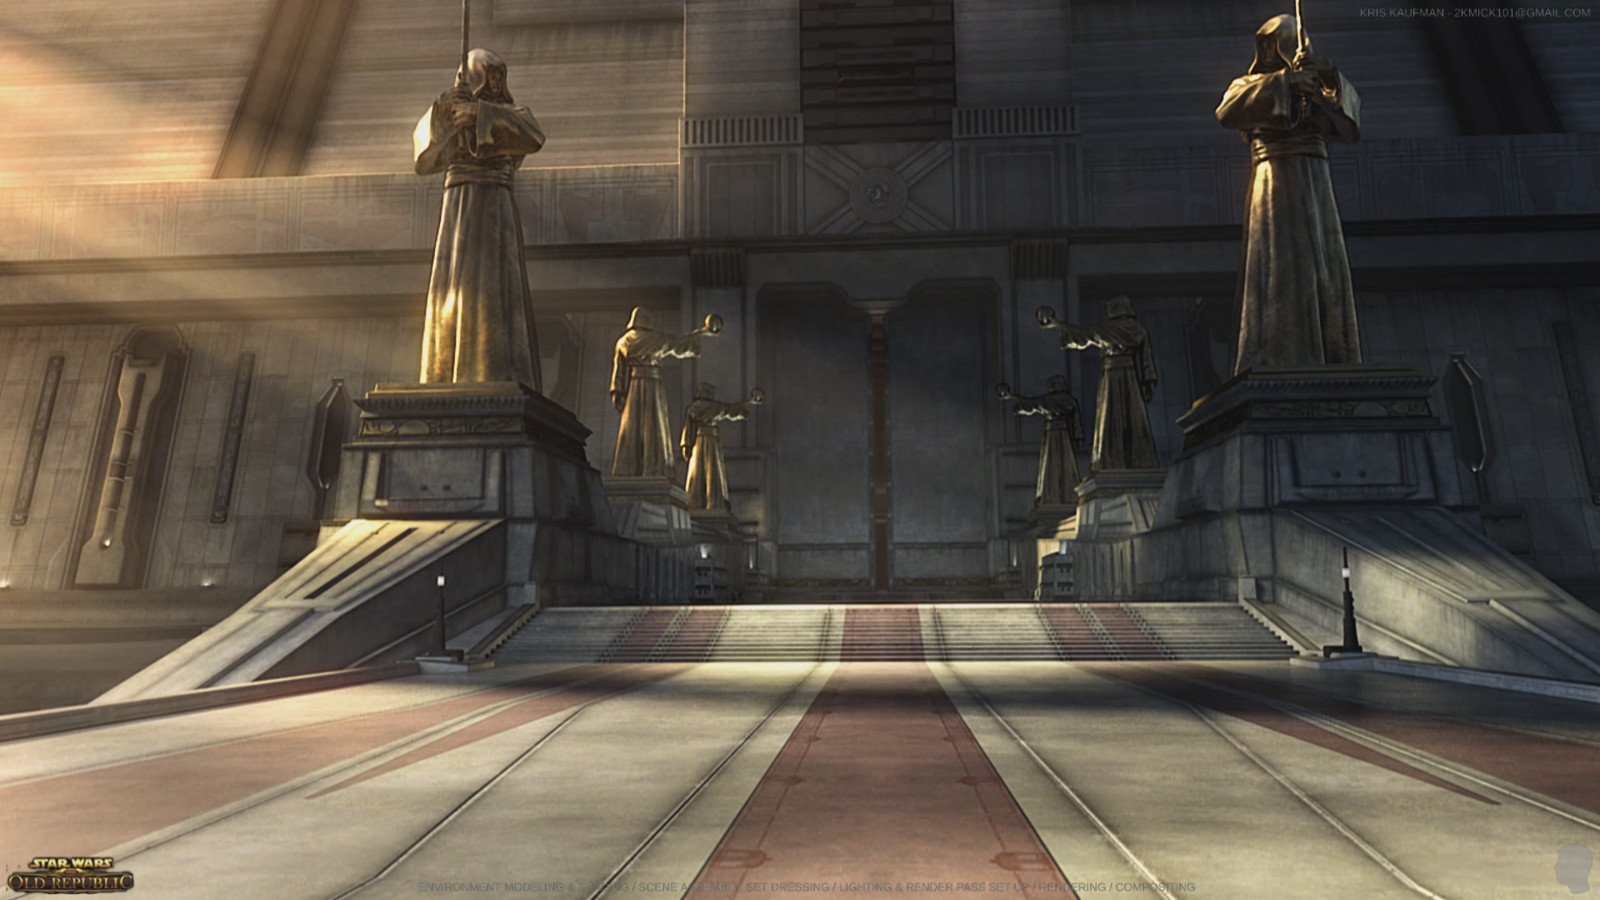 Star Wars: The Old Republic: Environment Modeling & Shading / Lighting / Rendering / Compositing